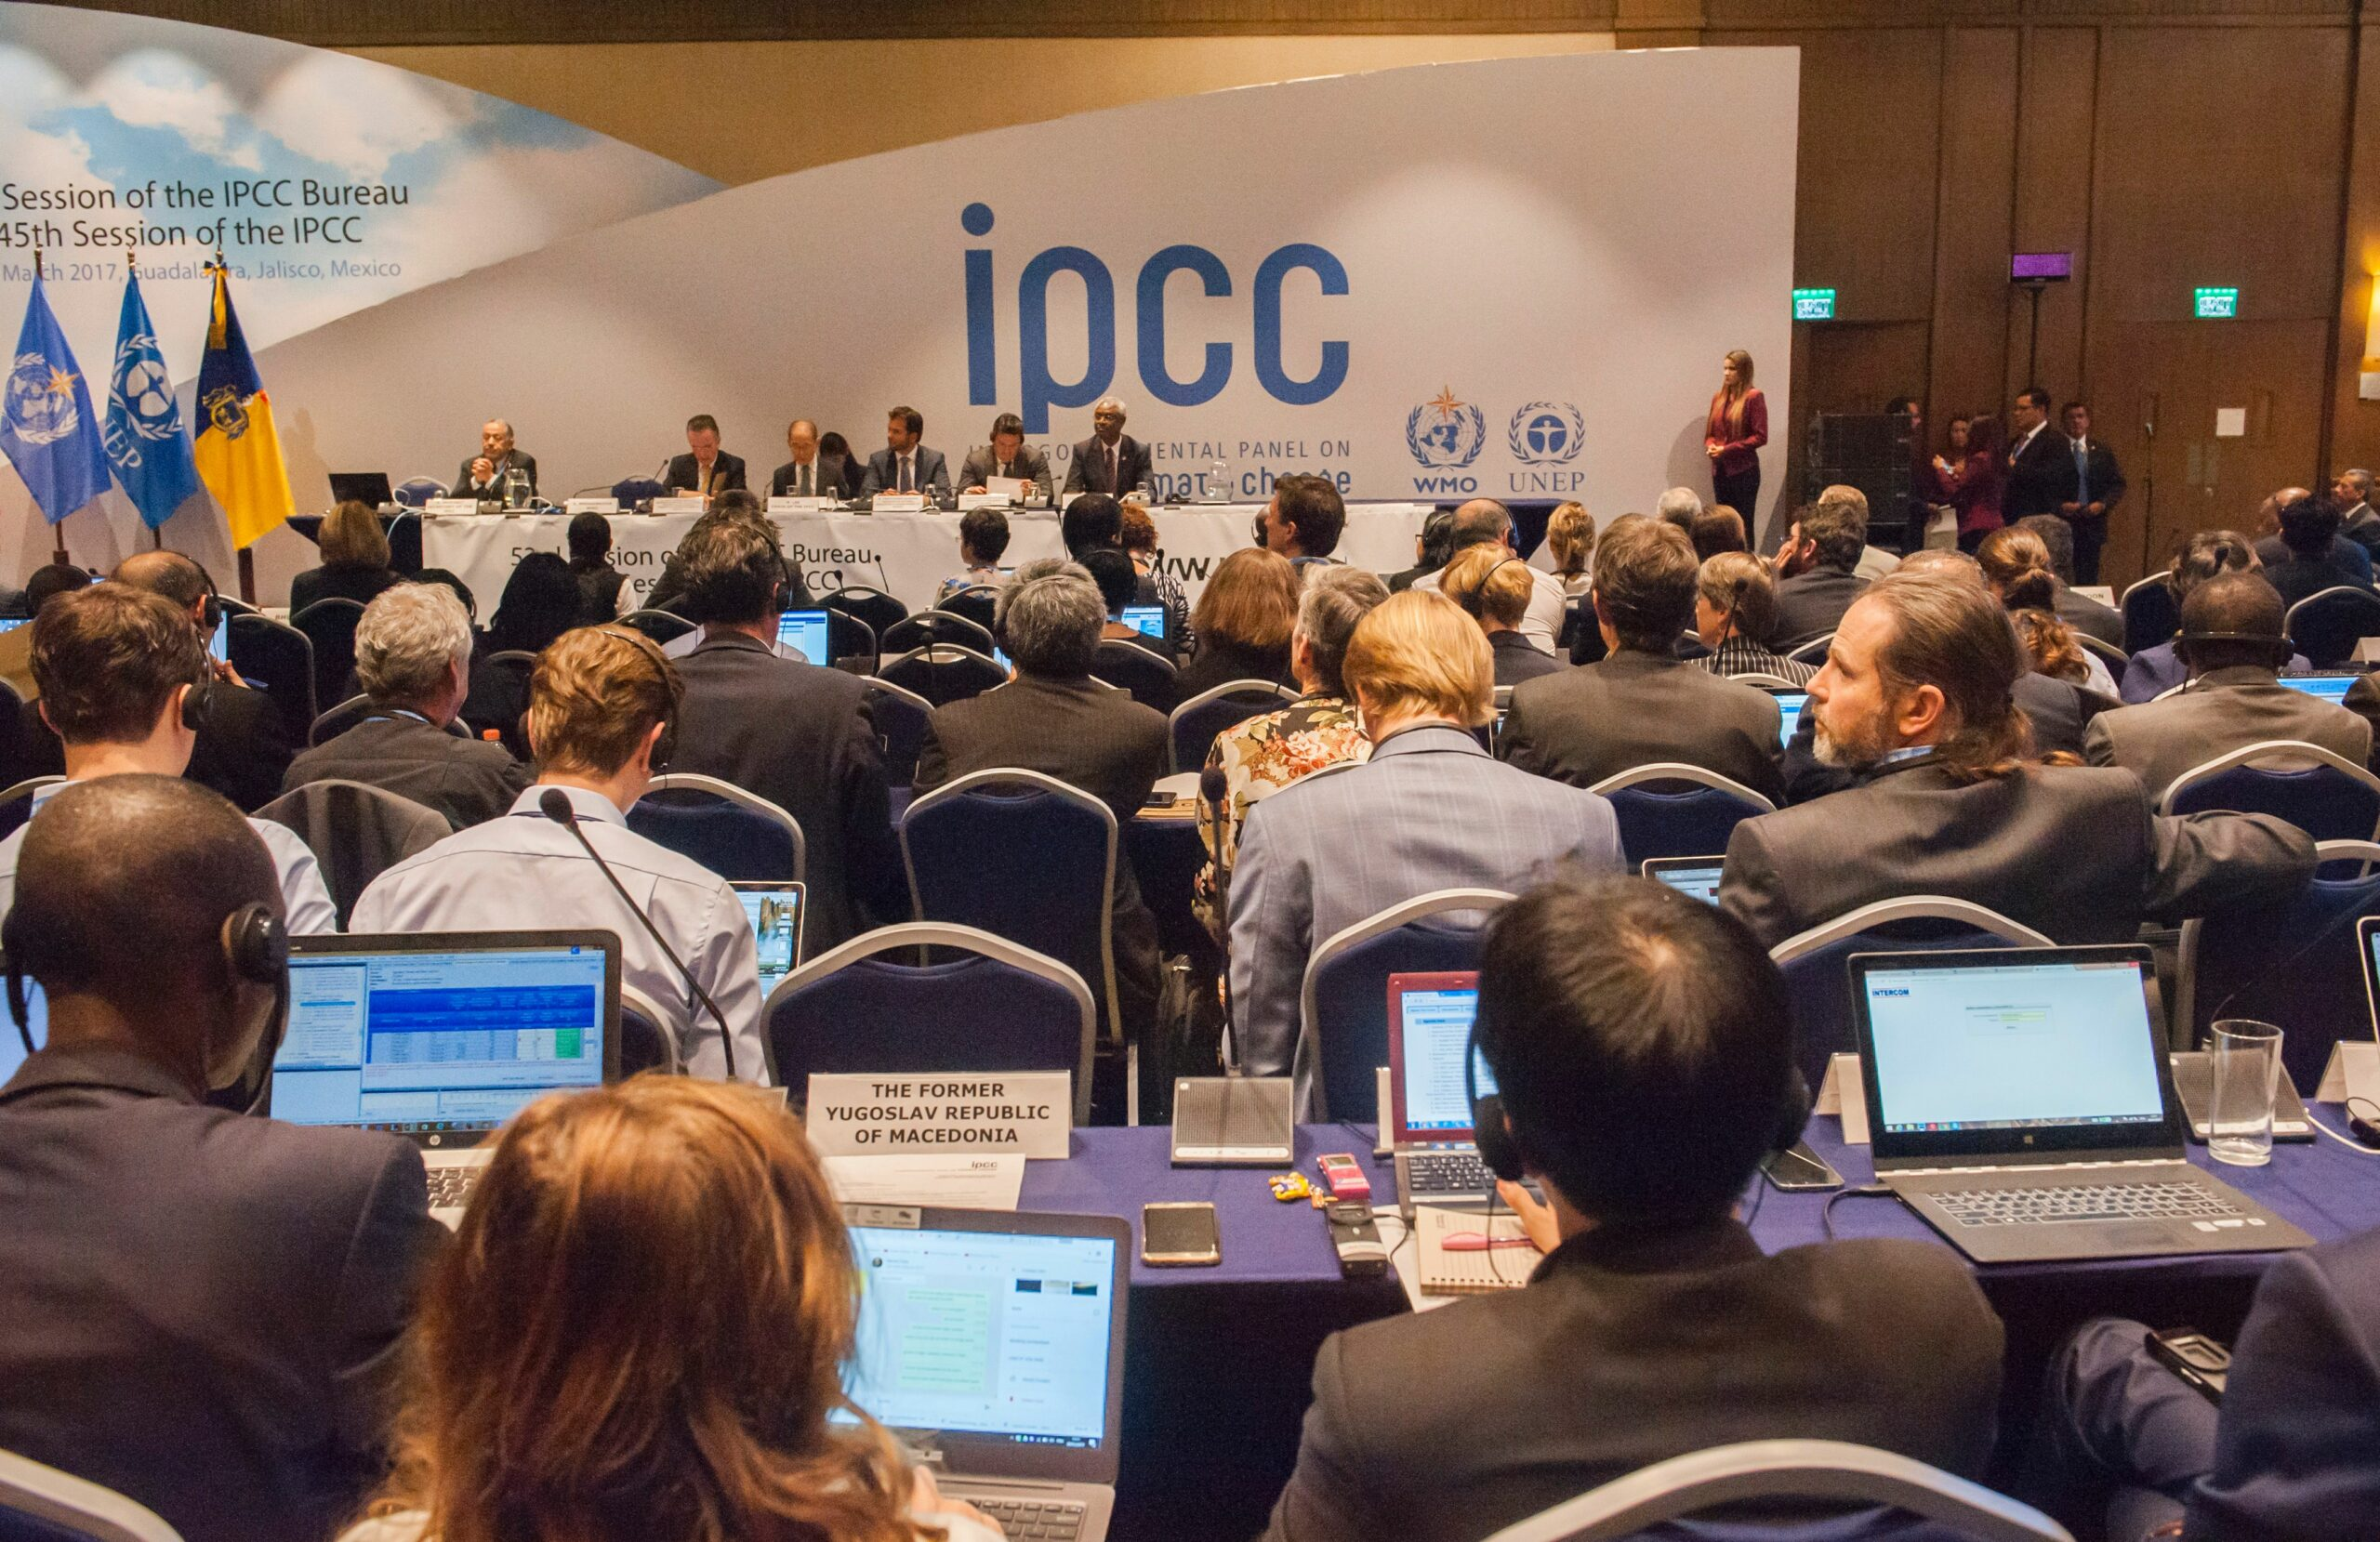 Delegates and experts attend the 45th Inter-governmental Panel on Climate Change (IPCC) opening ceremony in Guadalajara, Mexico on March 28, 2017. Credit: Hector Guerrero/AFP via Getty Images